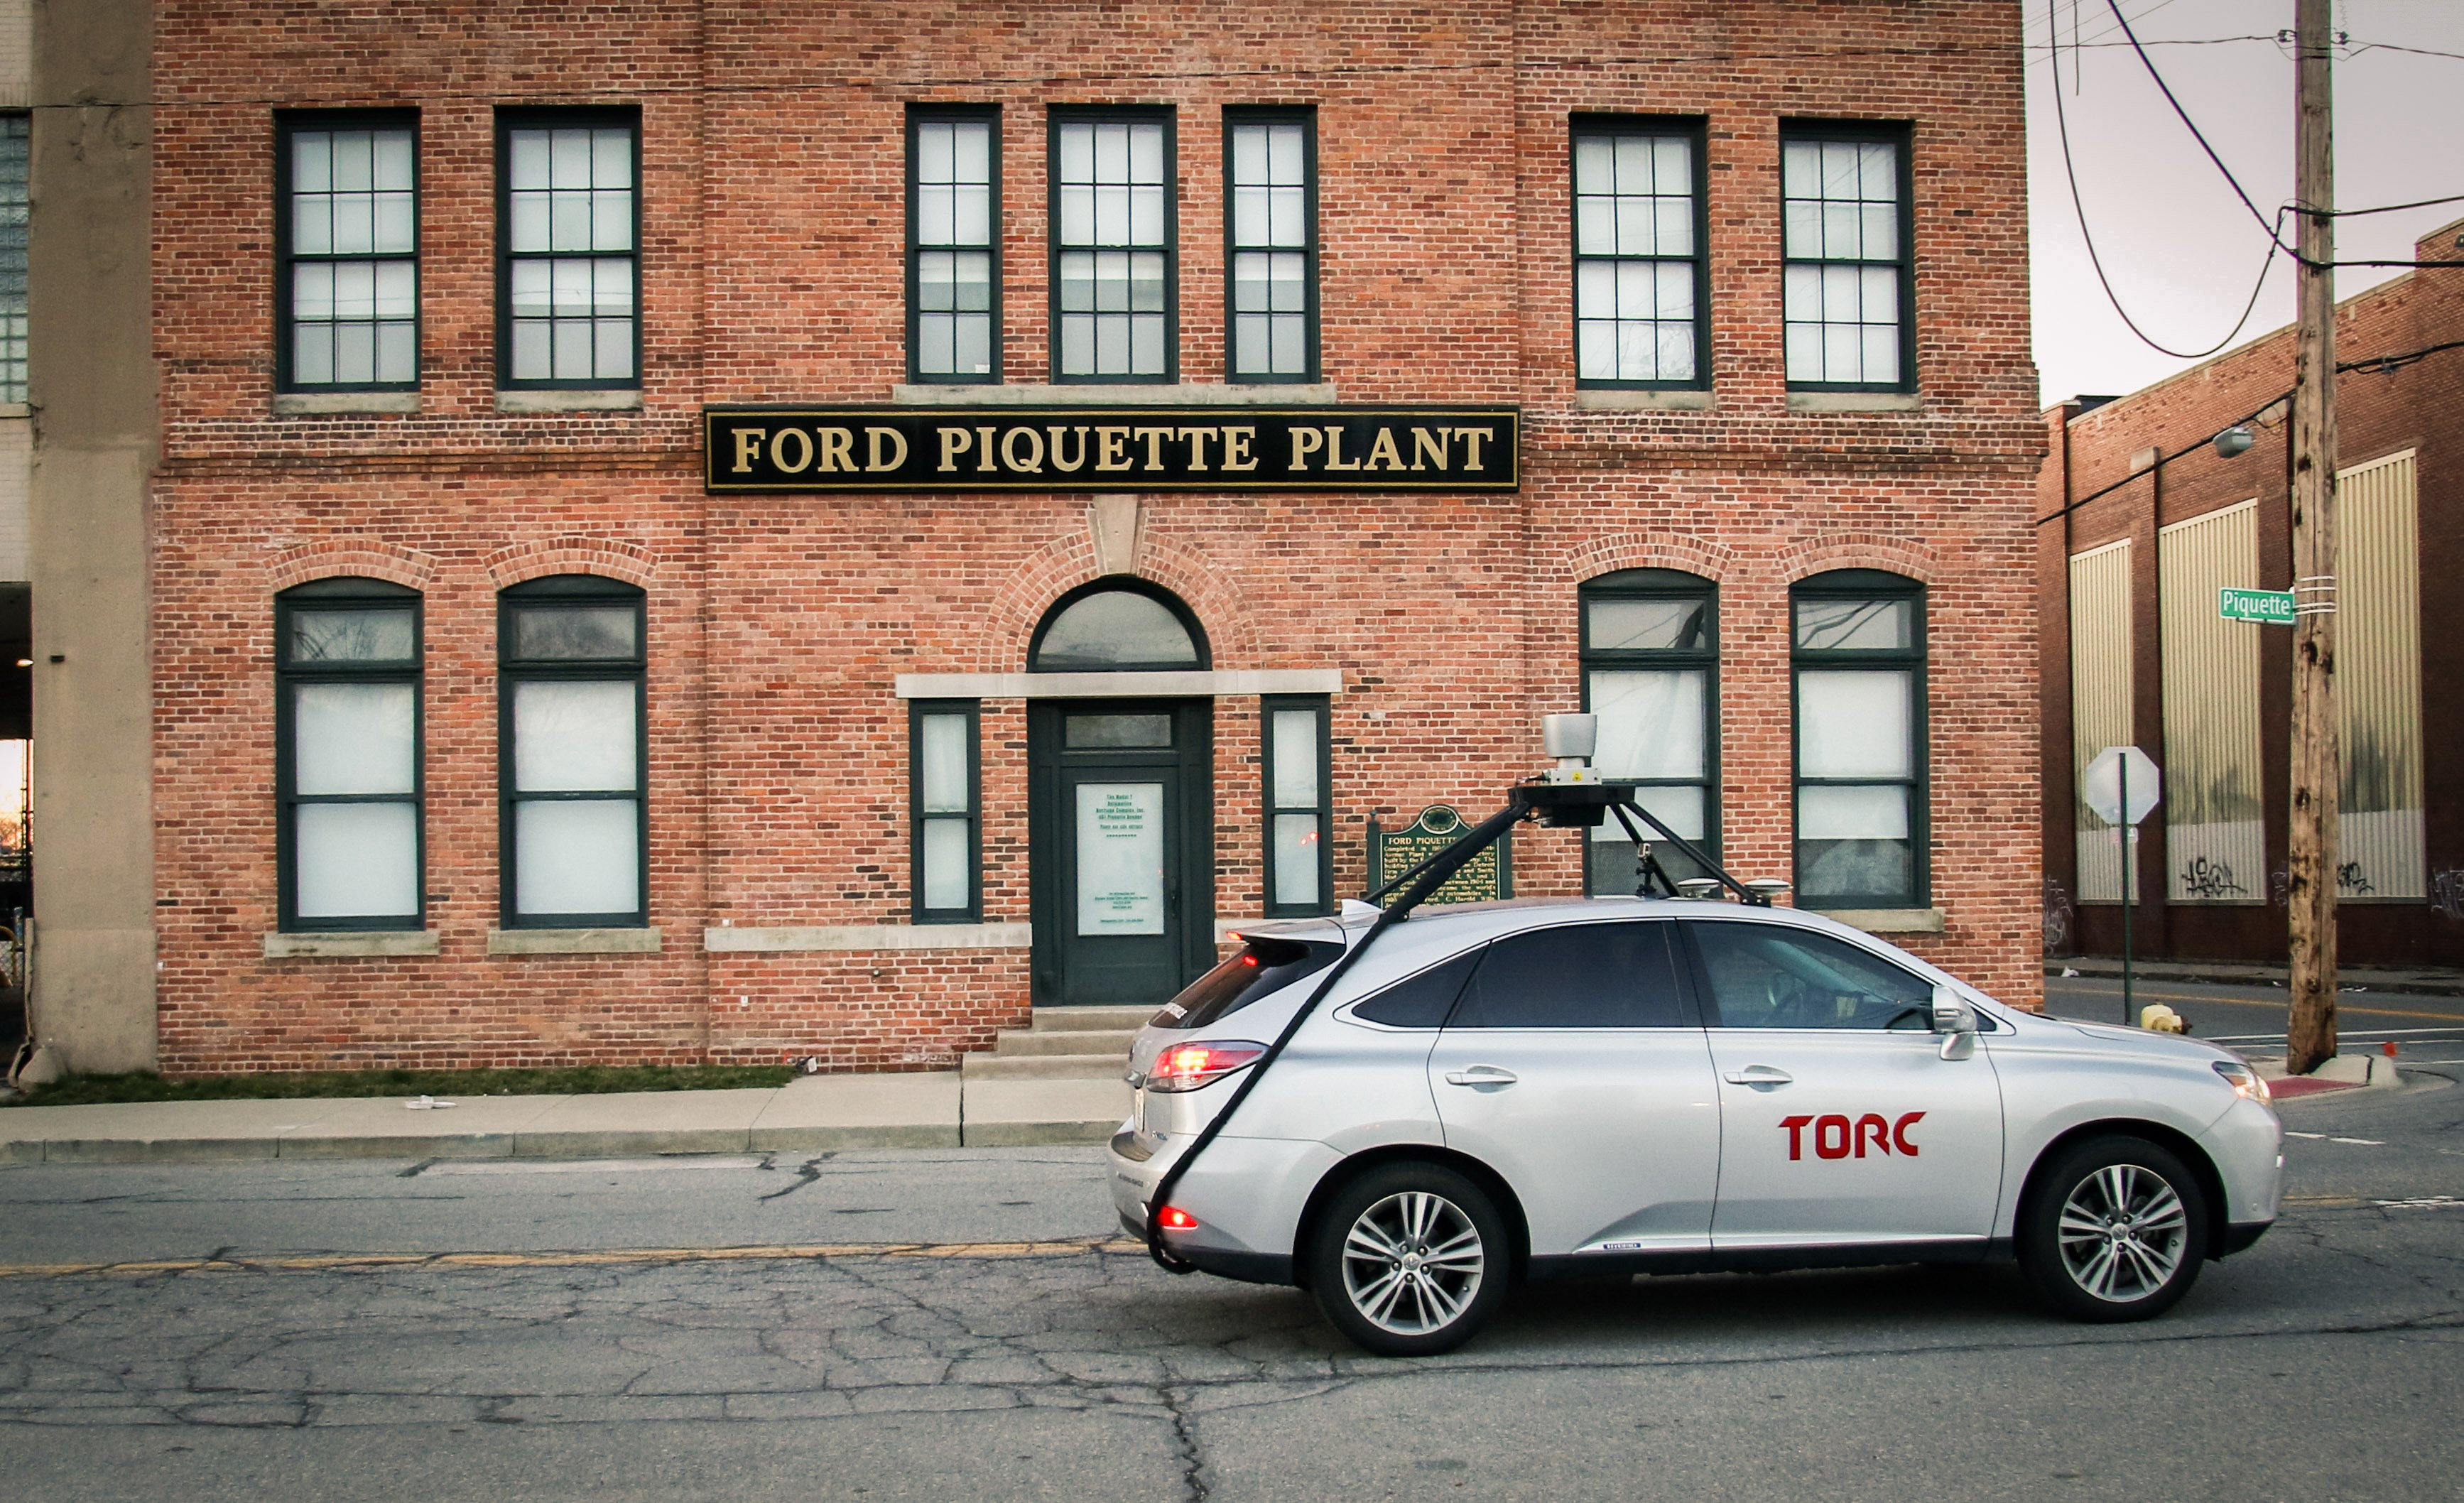 Self driving car successfully drove from Virginia to Detroit (Torc)